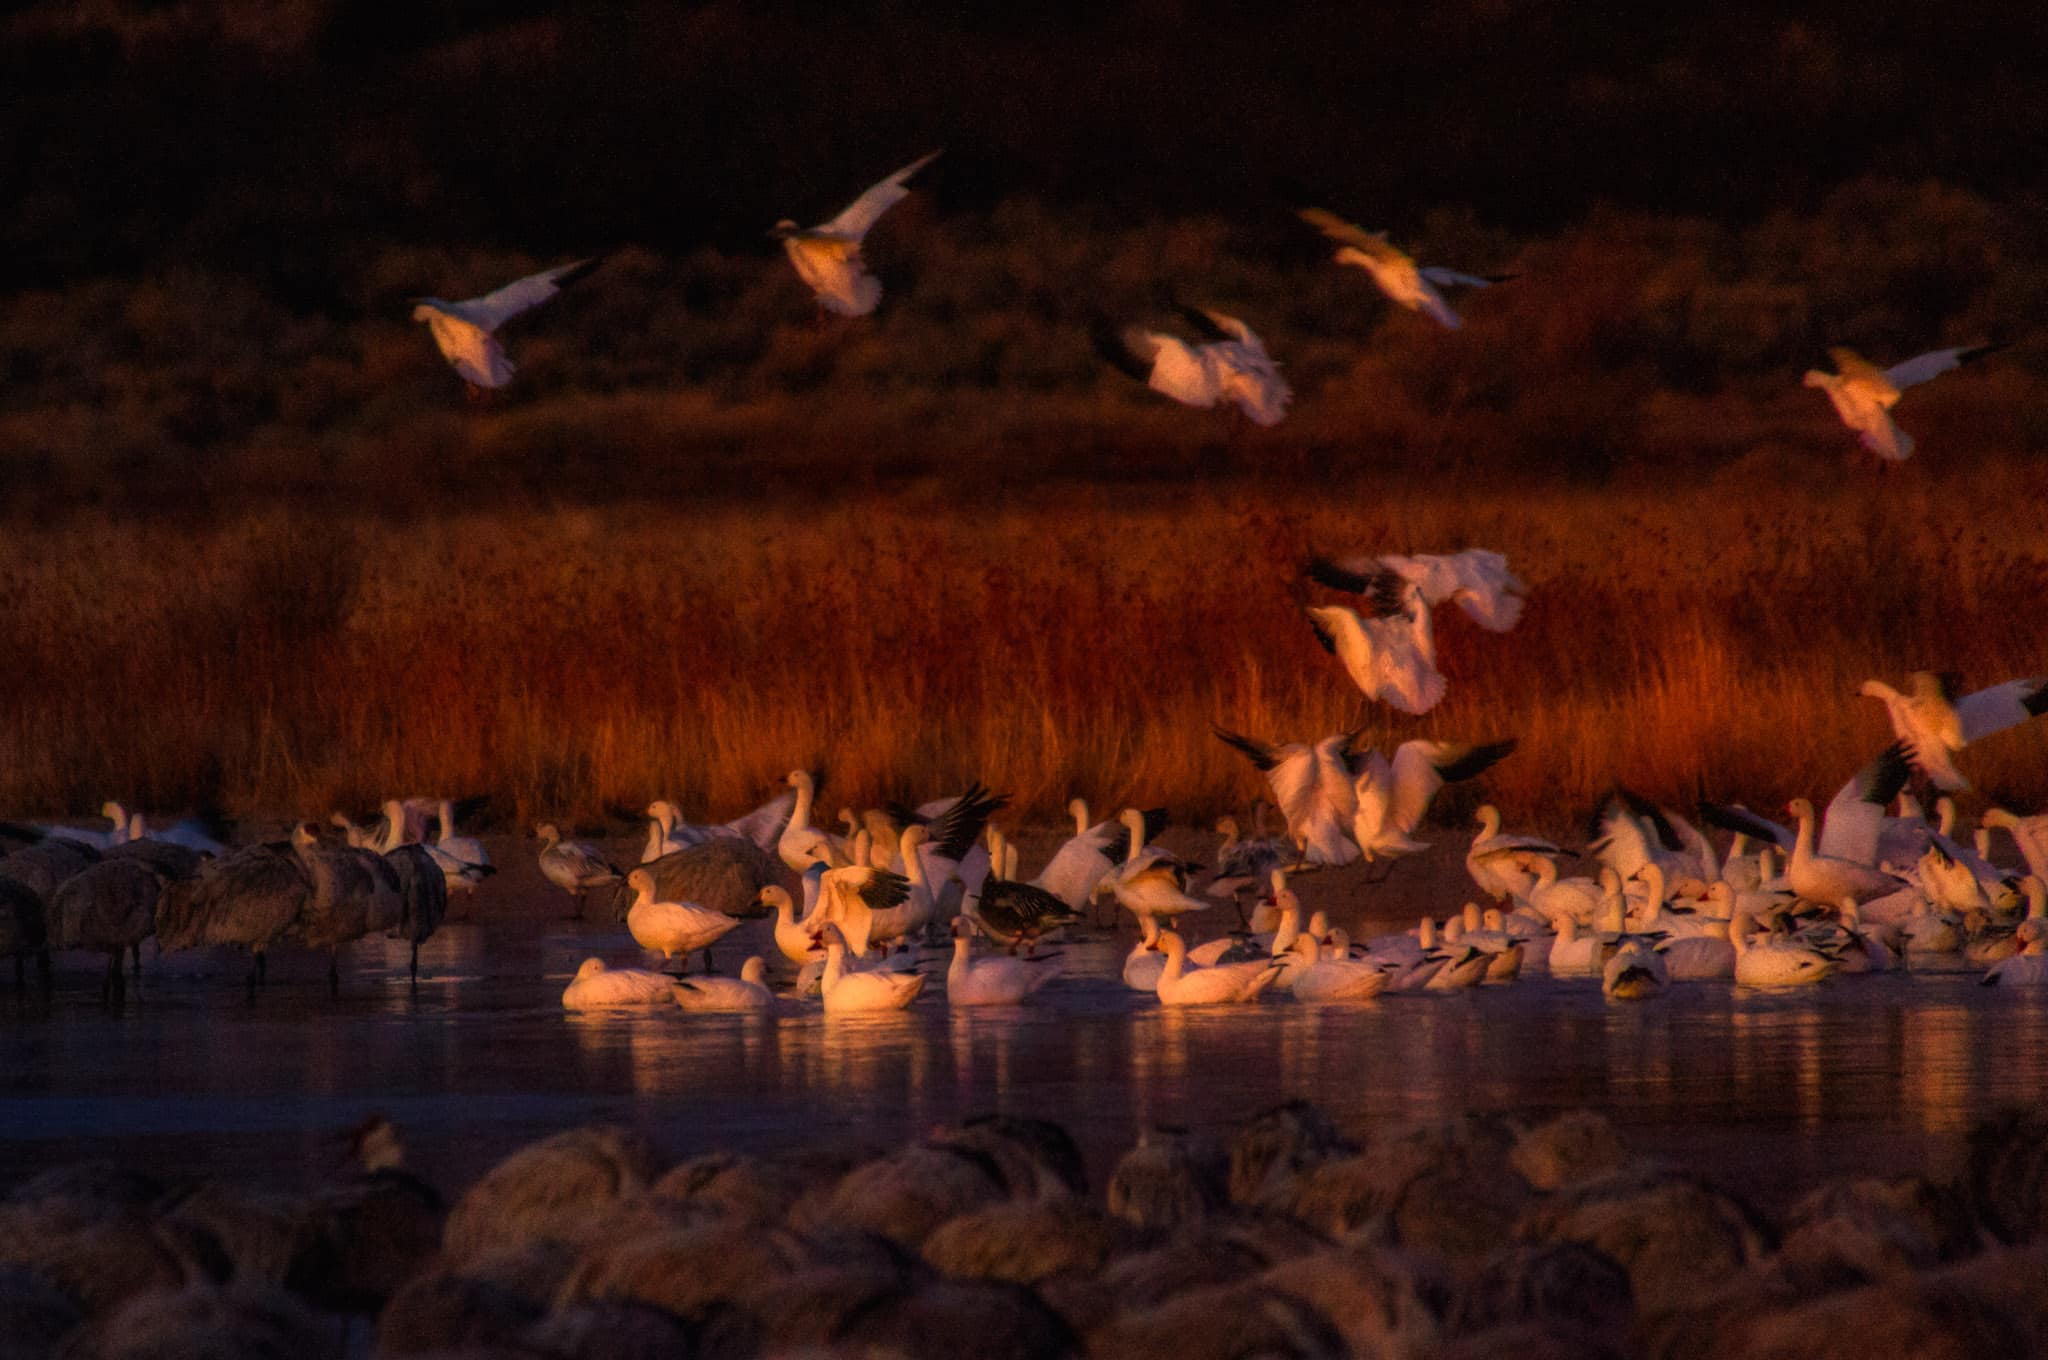 It is dawn and the Snow Geese, who are early risers, are just starting to take off for the day from a pond near Bosque del Apache, just south of Socorro, New Mexico.